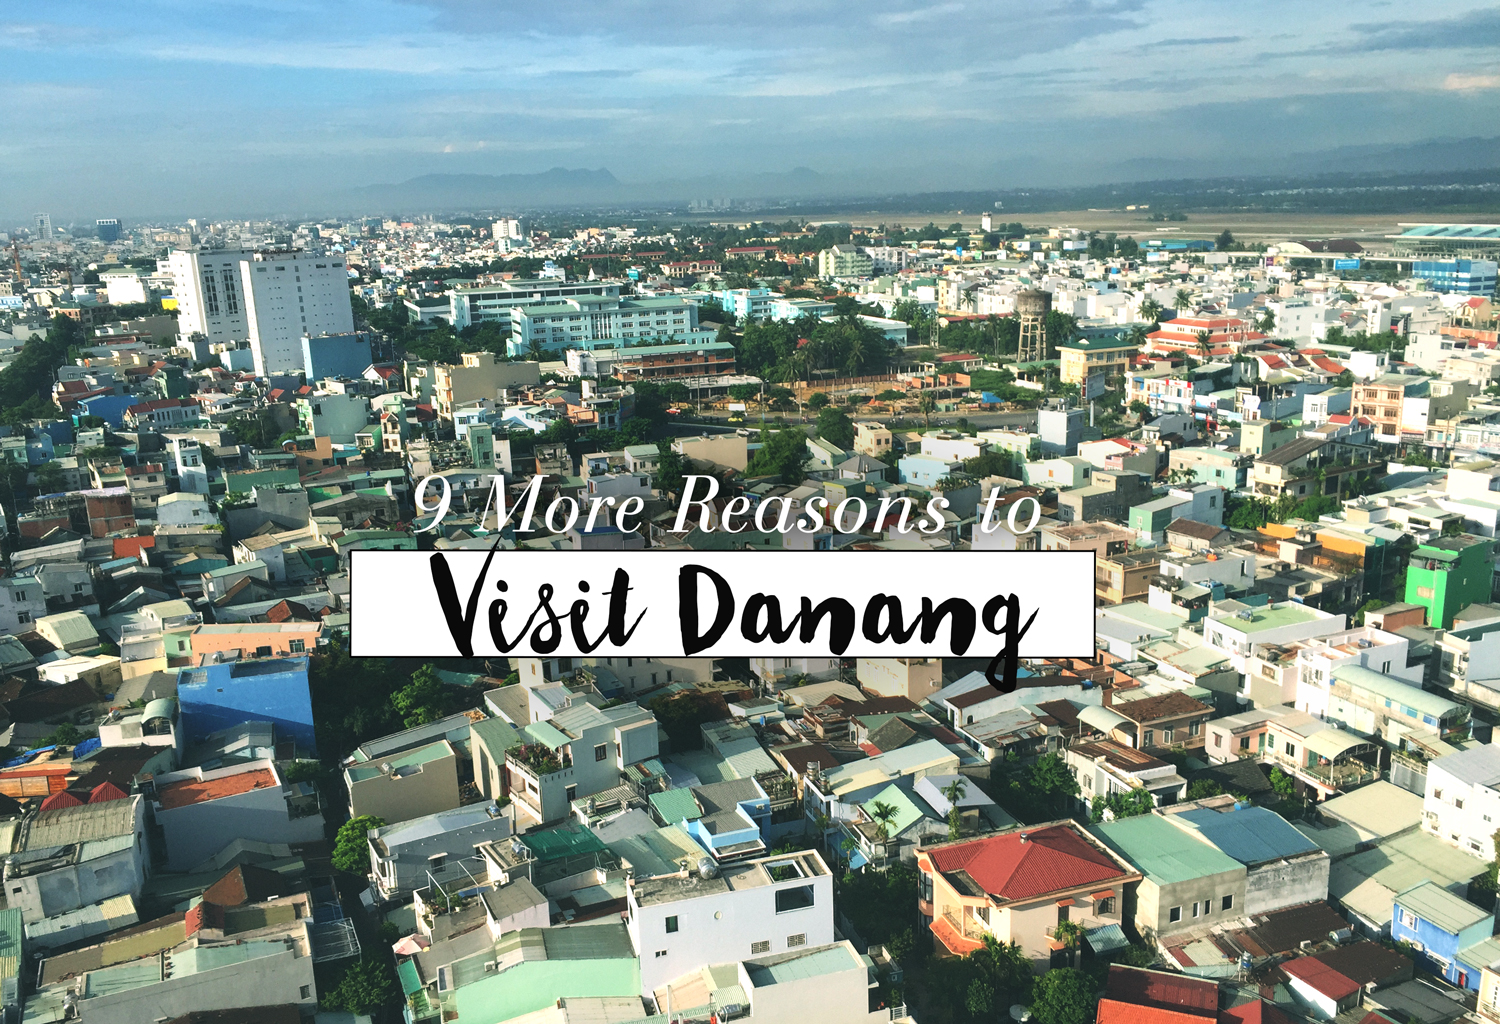 9 More Reasons to Visit Danang